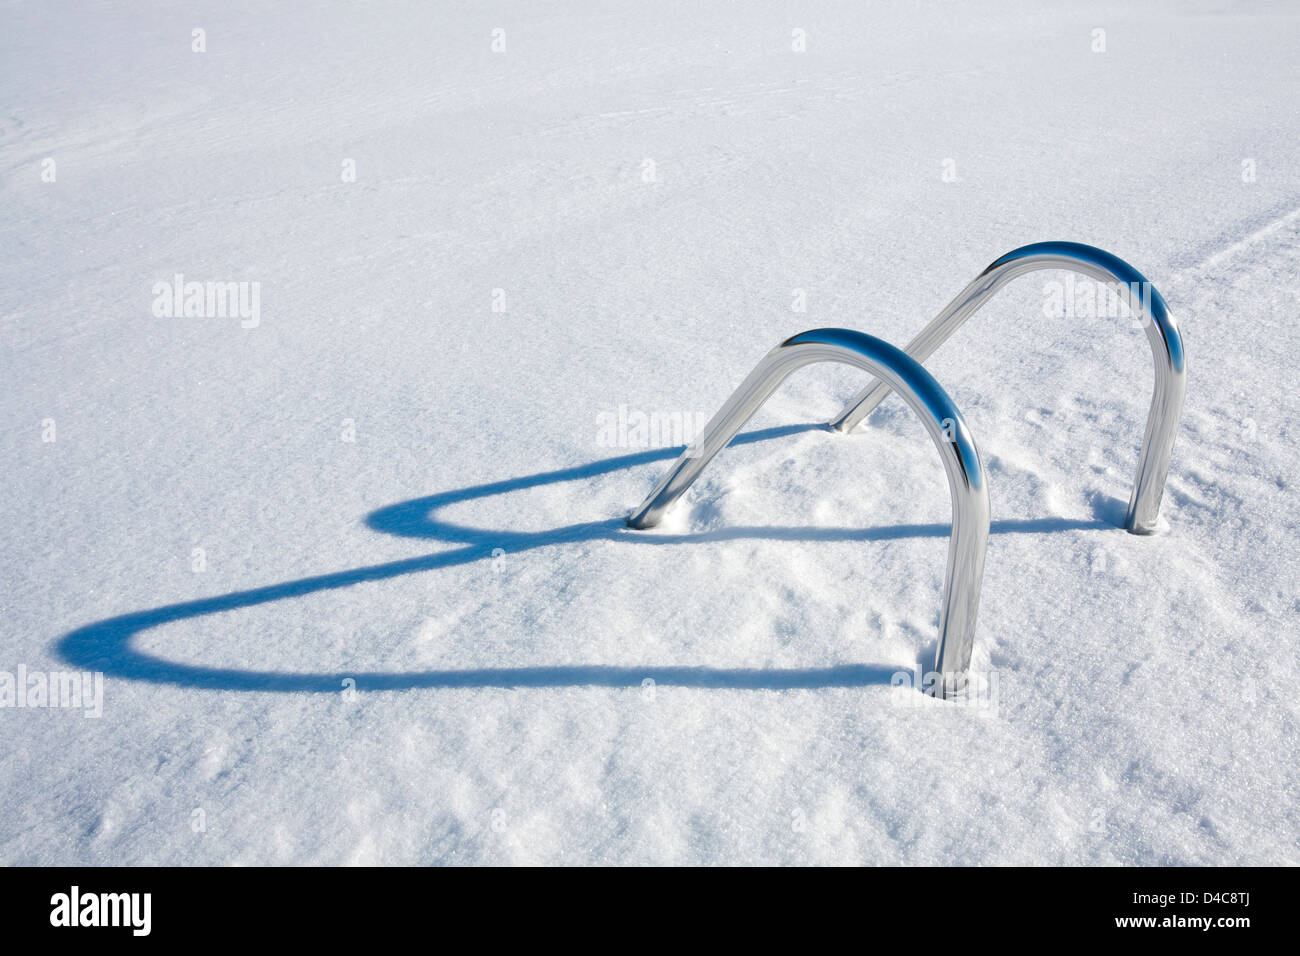 Swimming pool hand-rails at winter, Finland - Stock Image